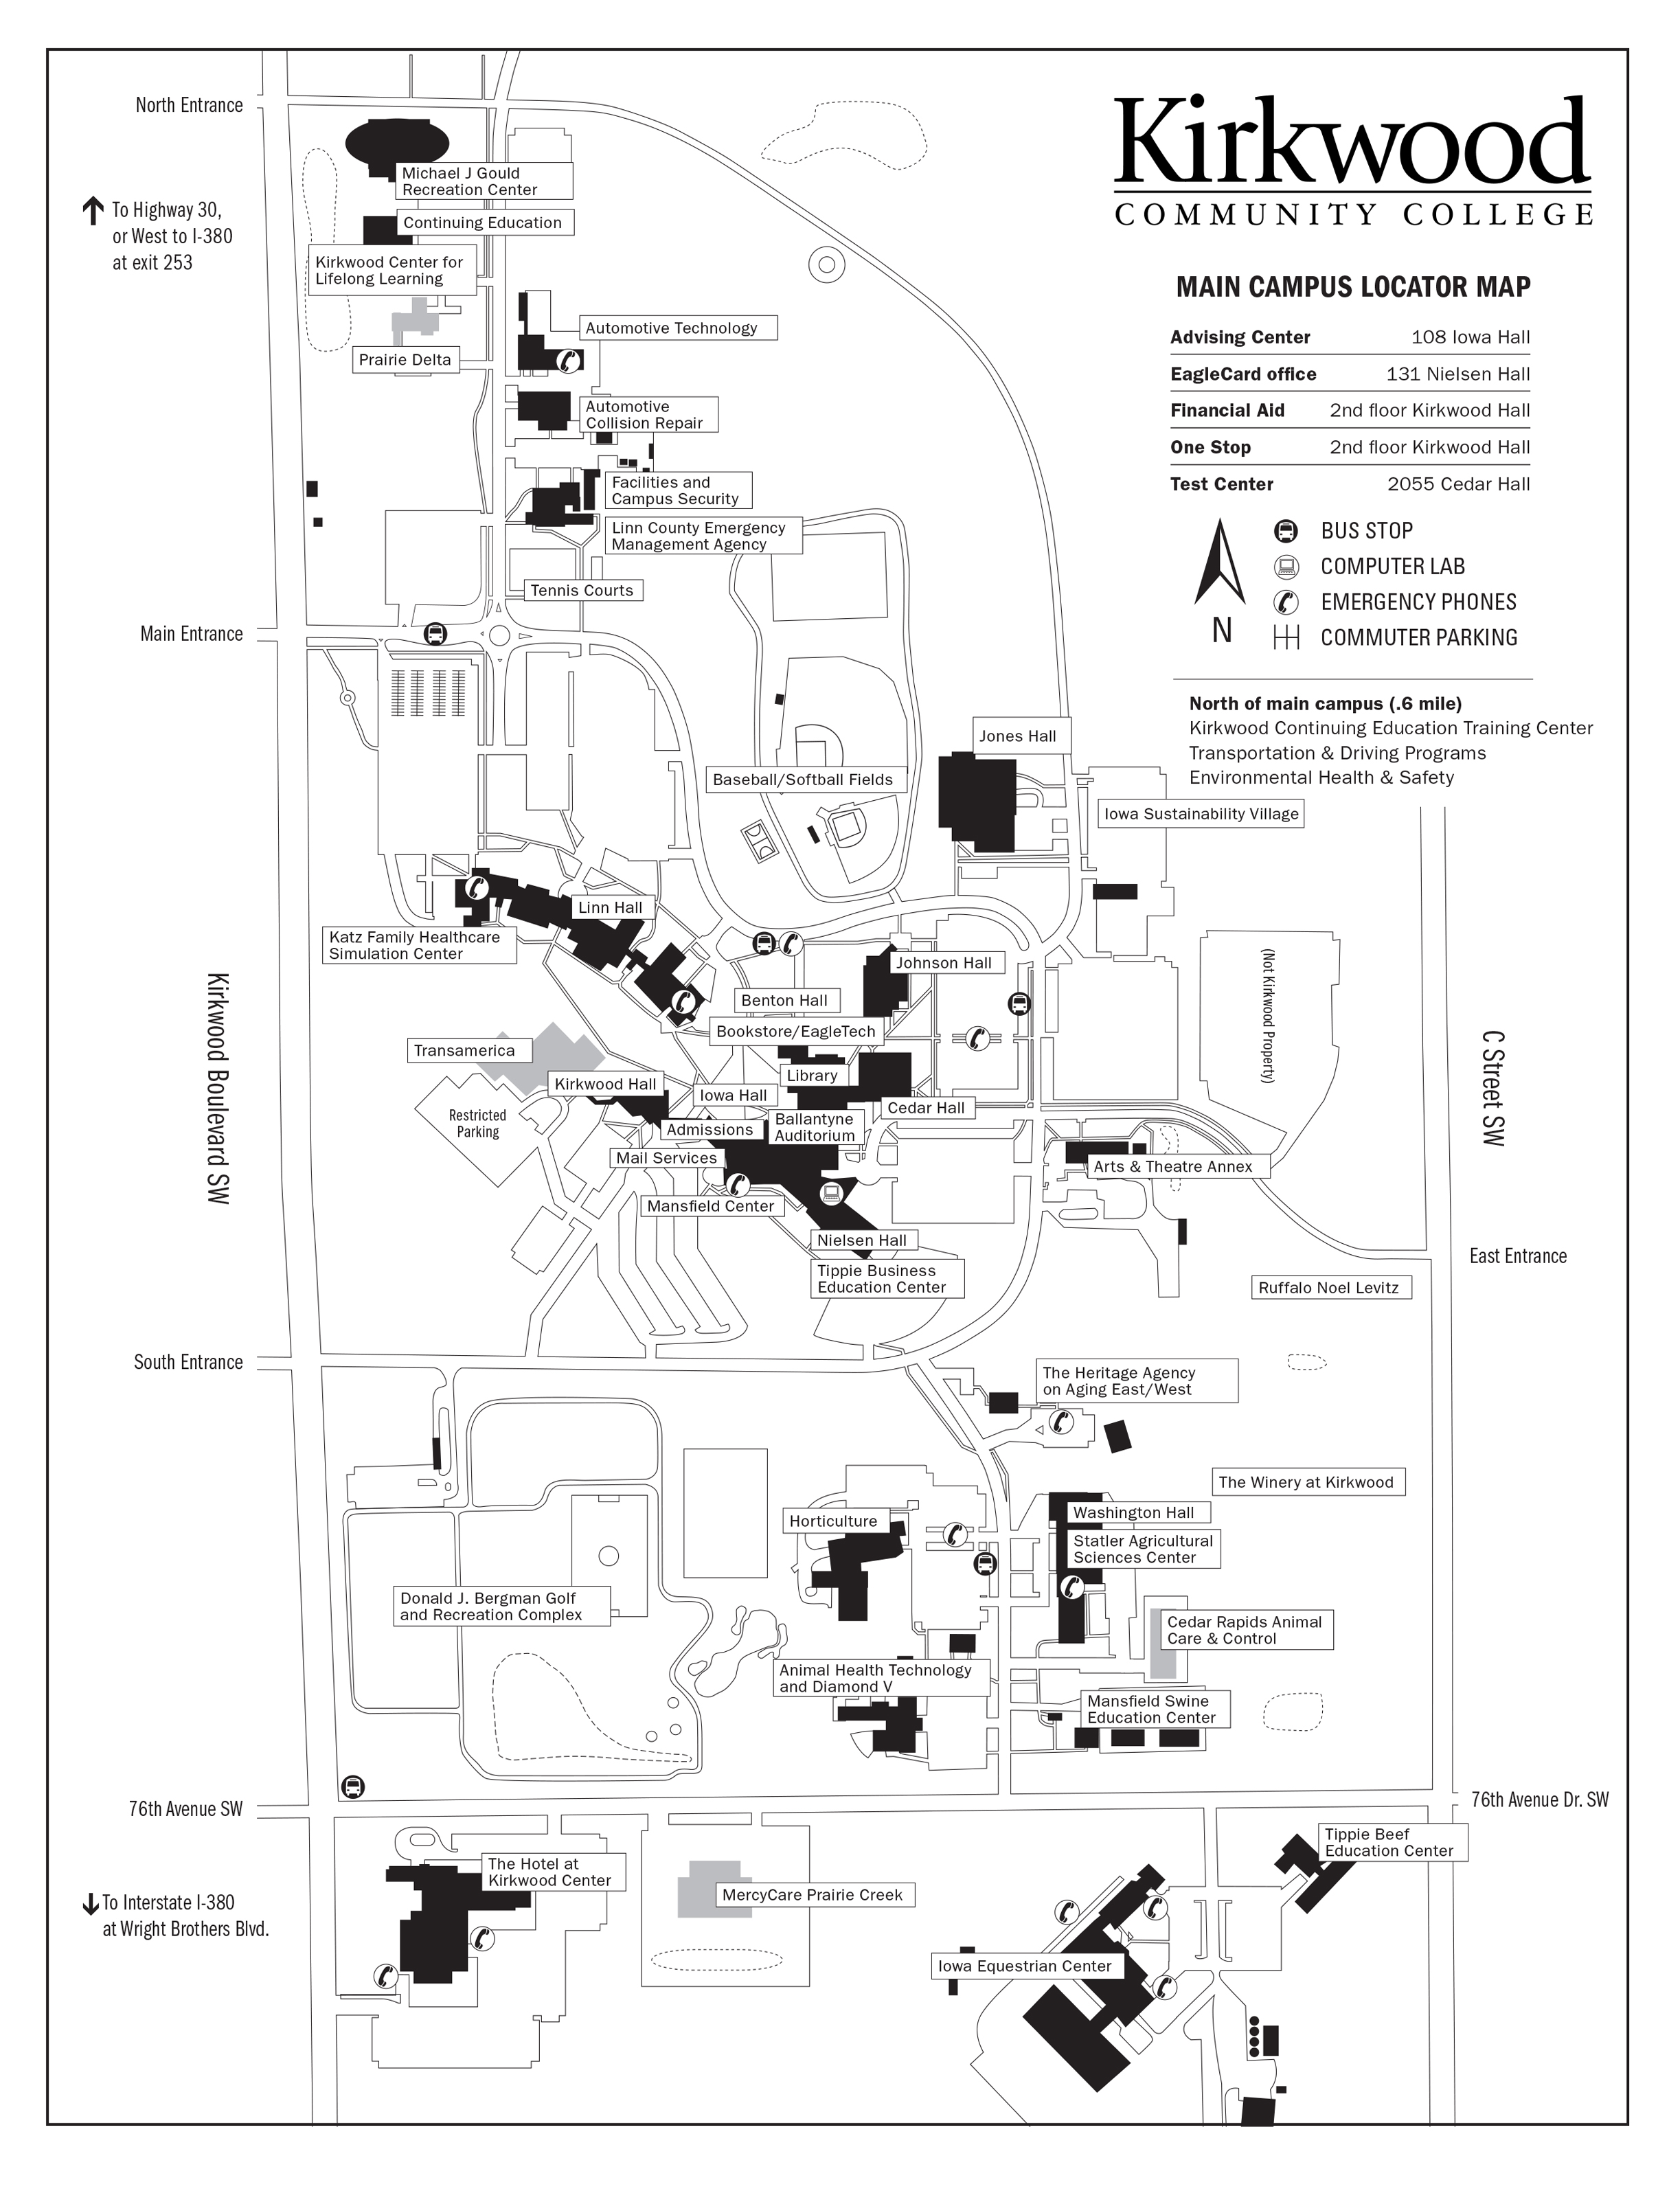 Kirkwood Community College Campus Map.Kirkwood Main Campus Map